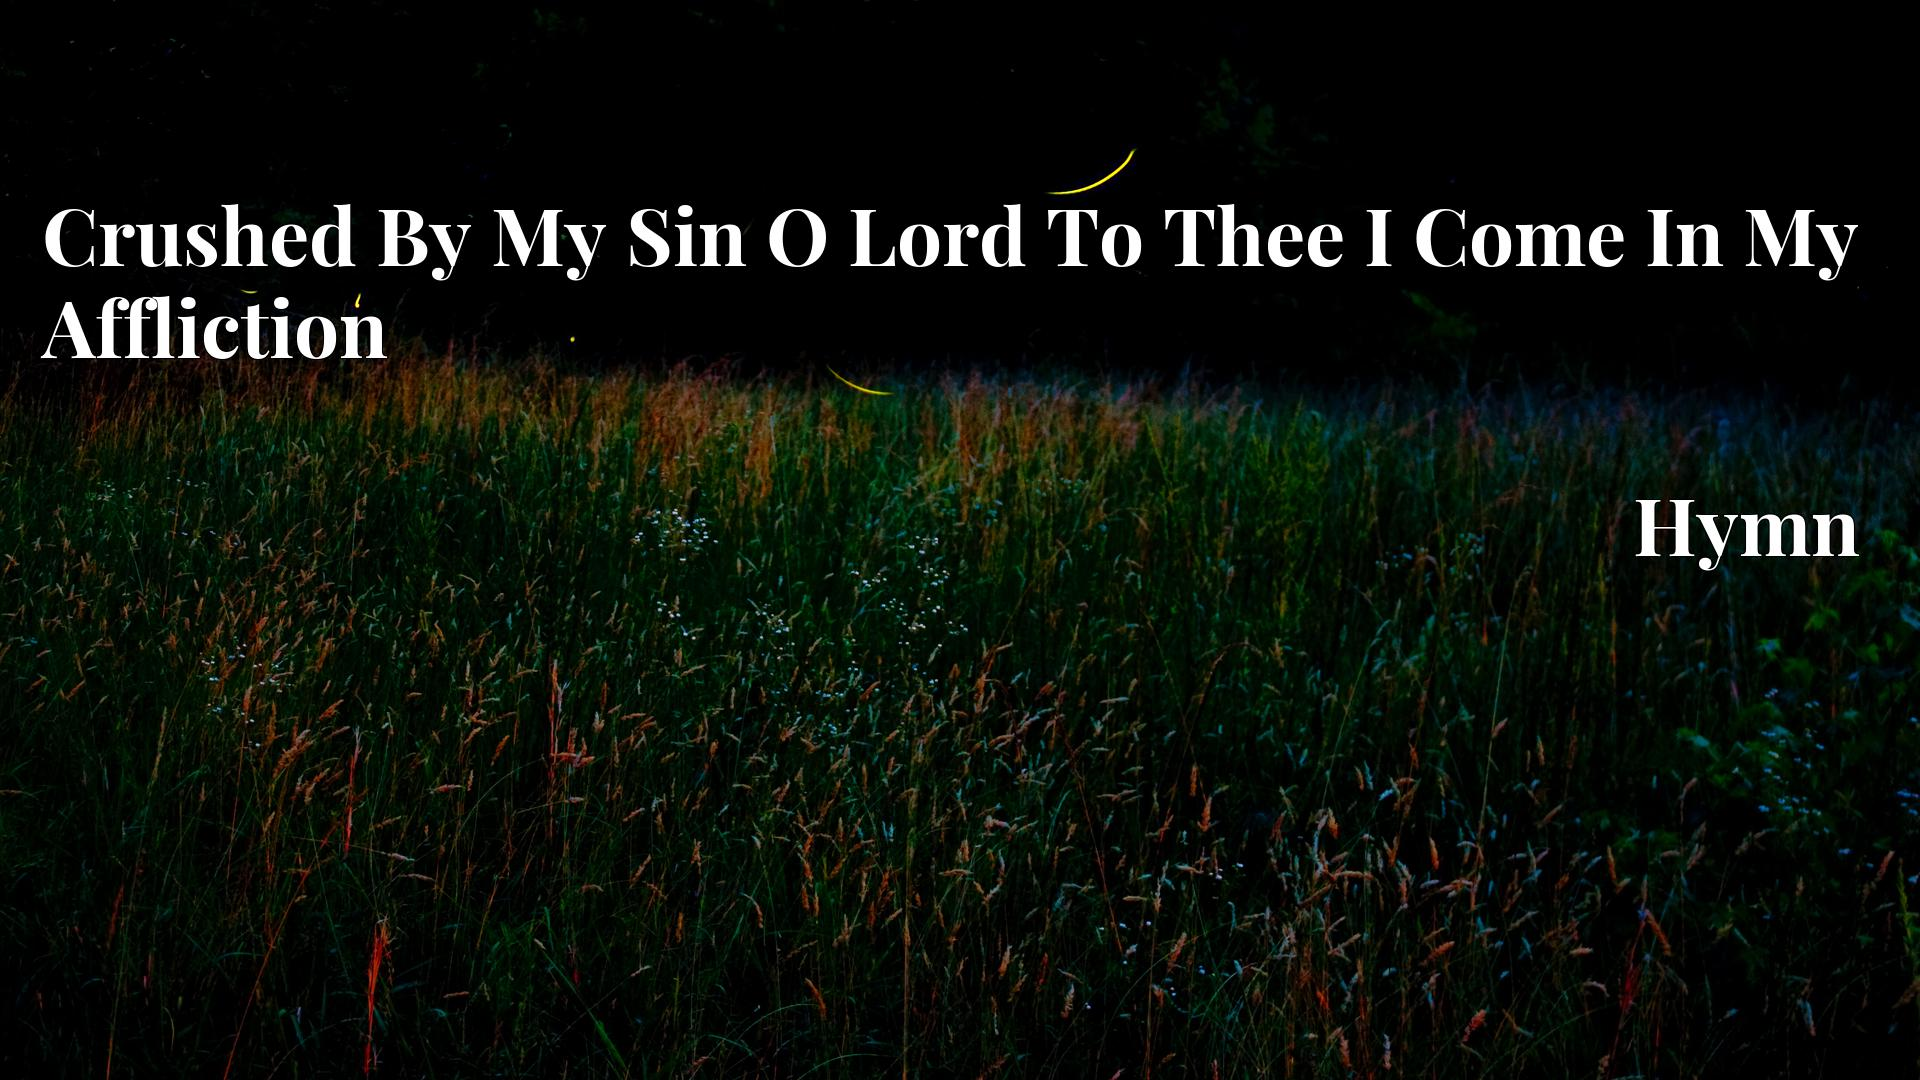 Crushed By My Sin O Lord To Thee I Come In My Affliction - Hymn